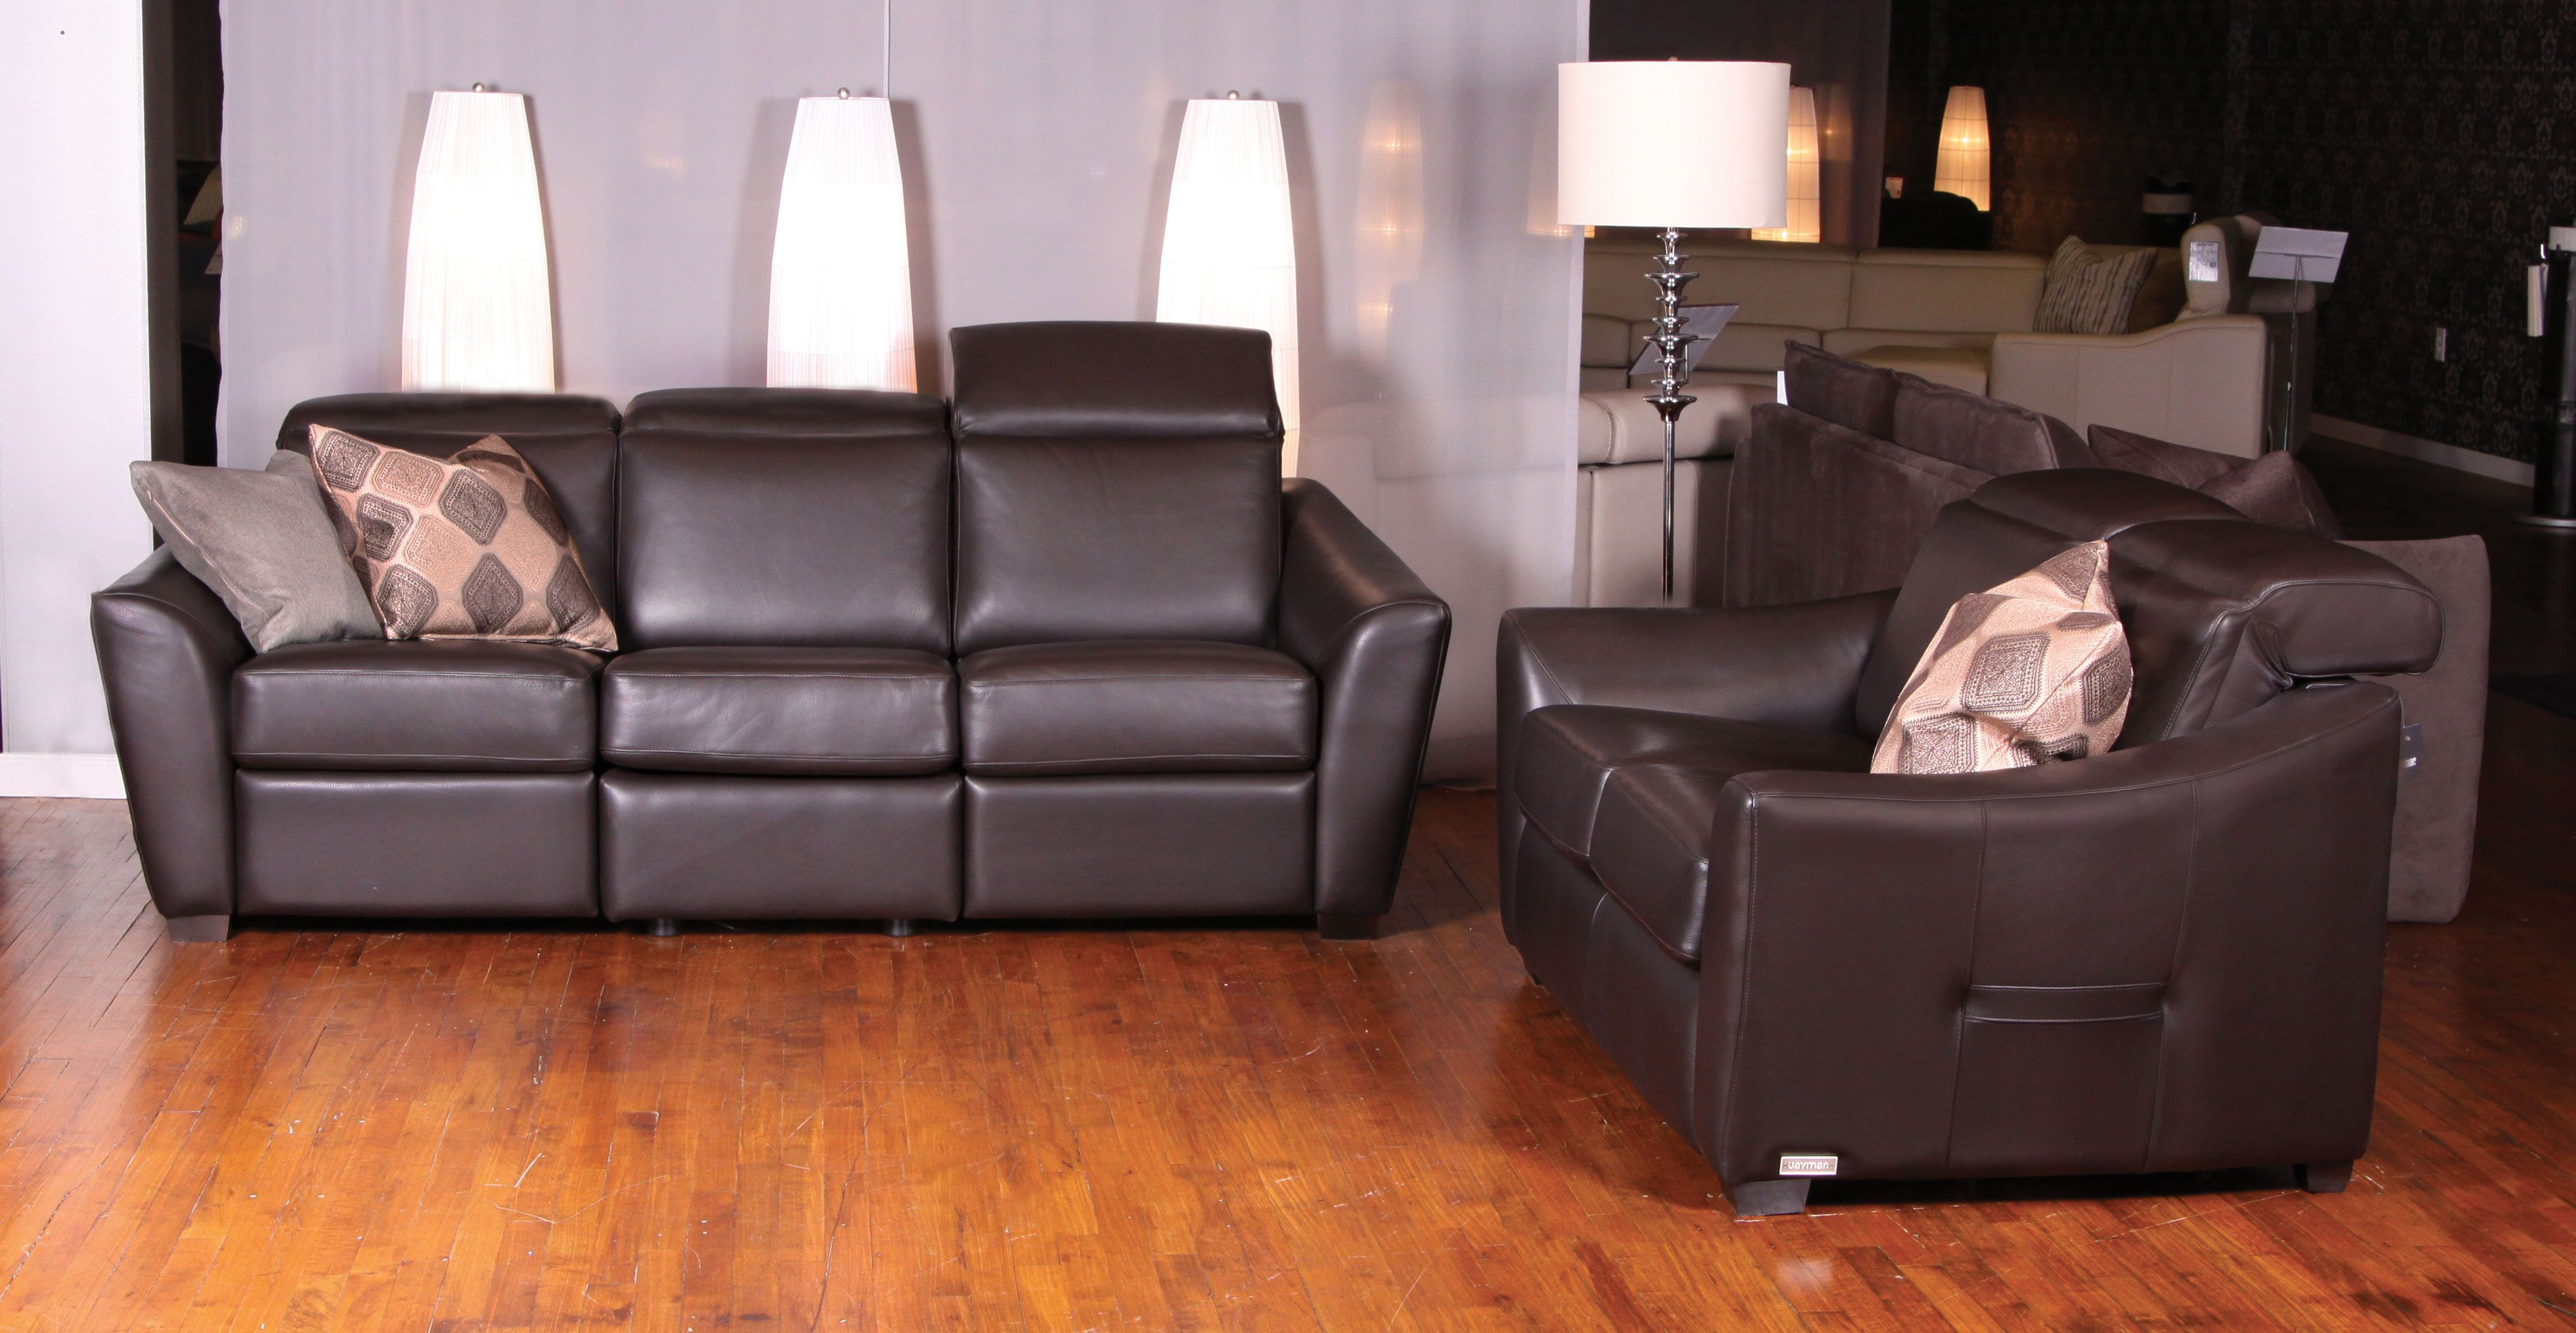 tufted leather sofa edmonton jennings power reclining console loveseat sofas made in canada brokeasshome